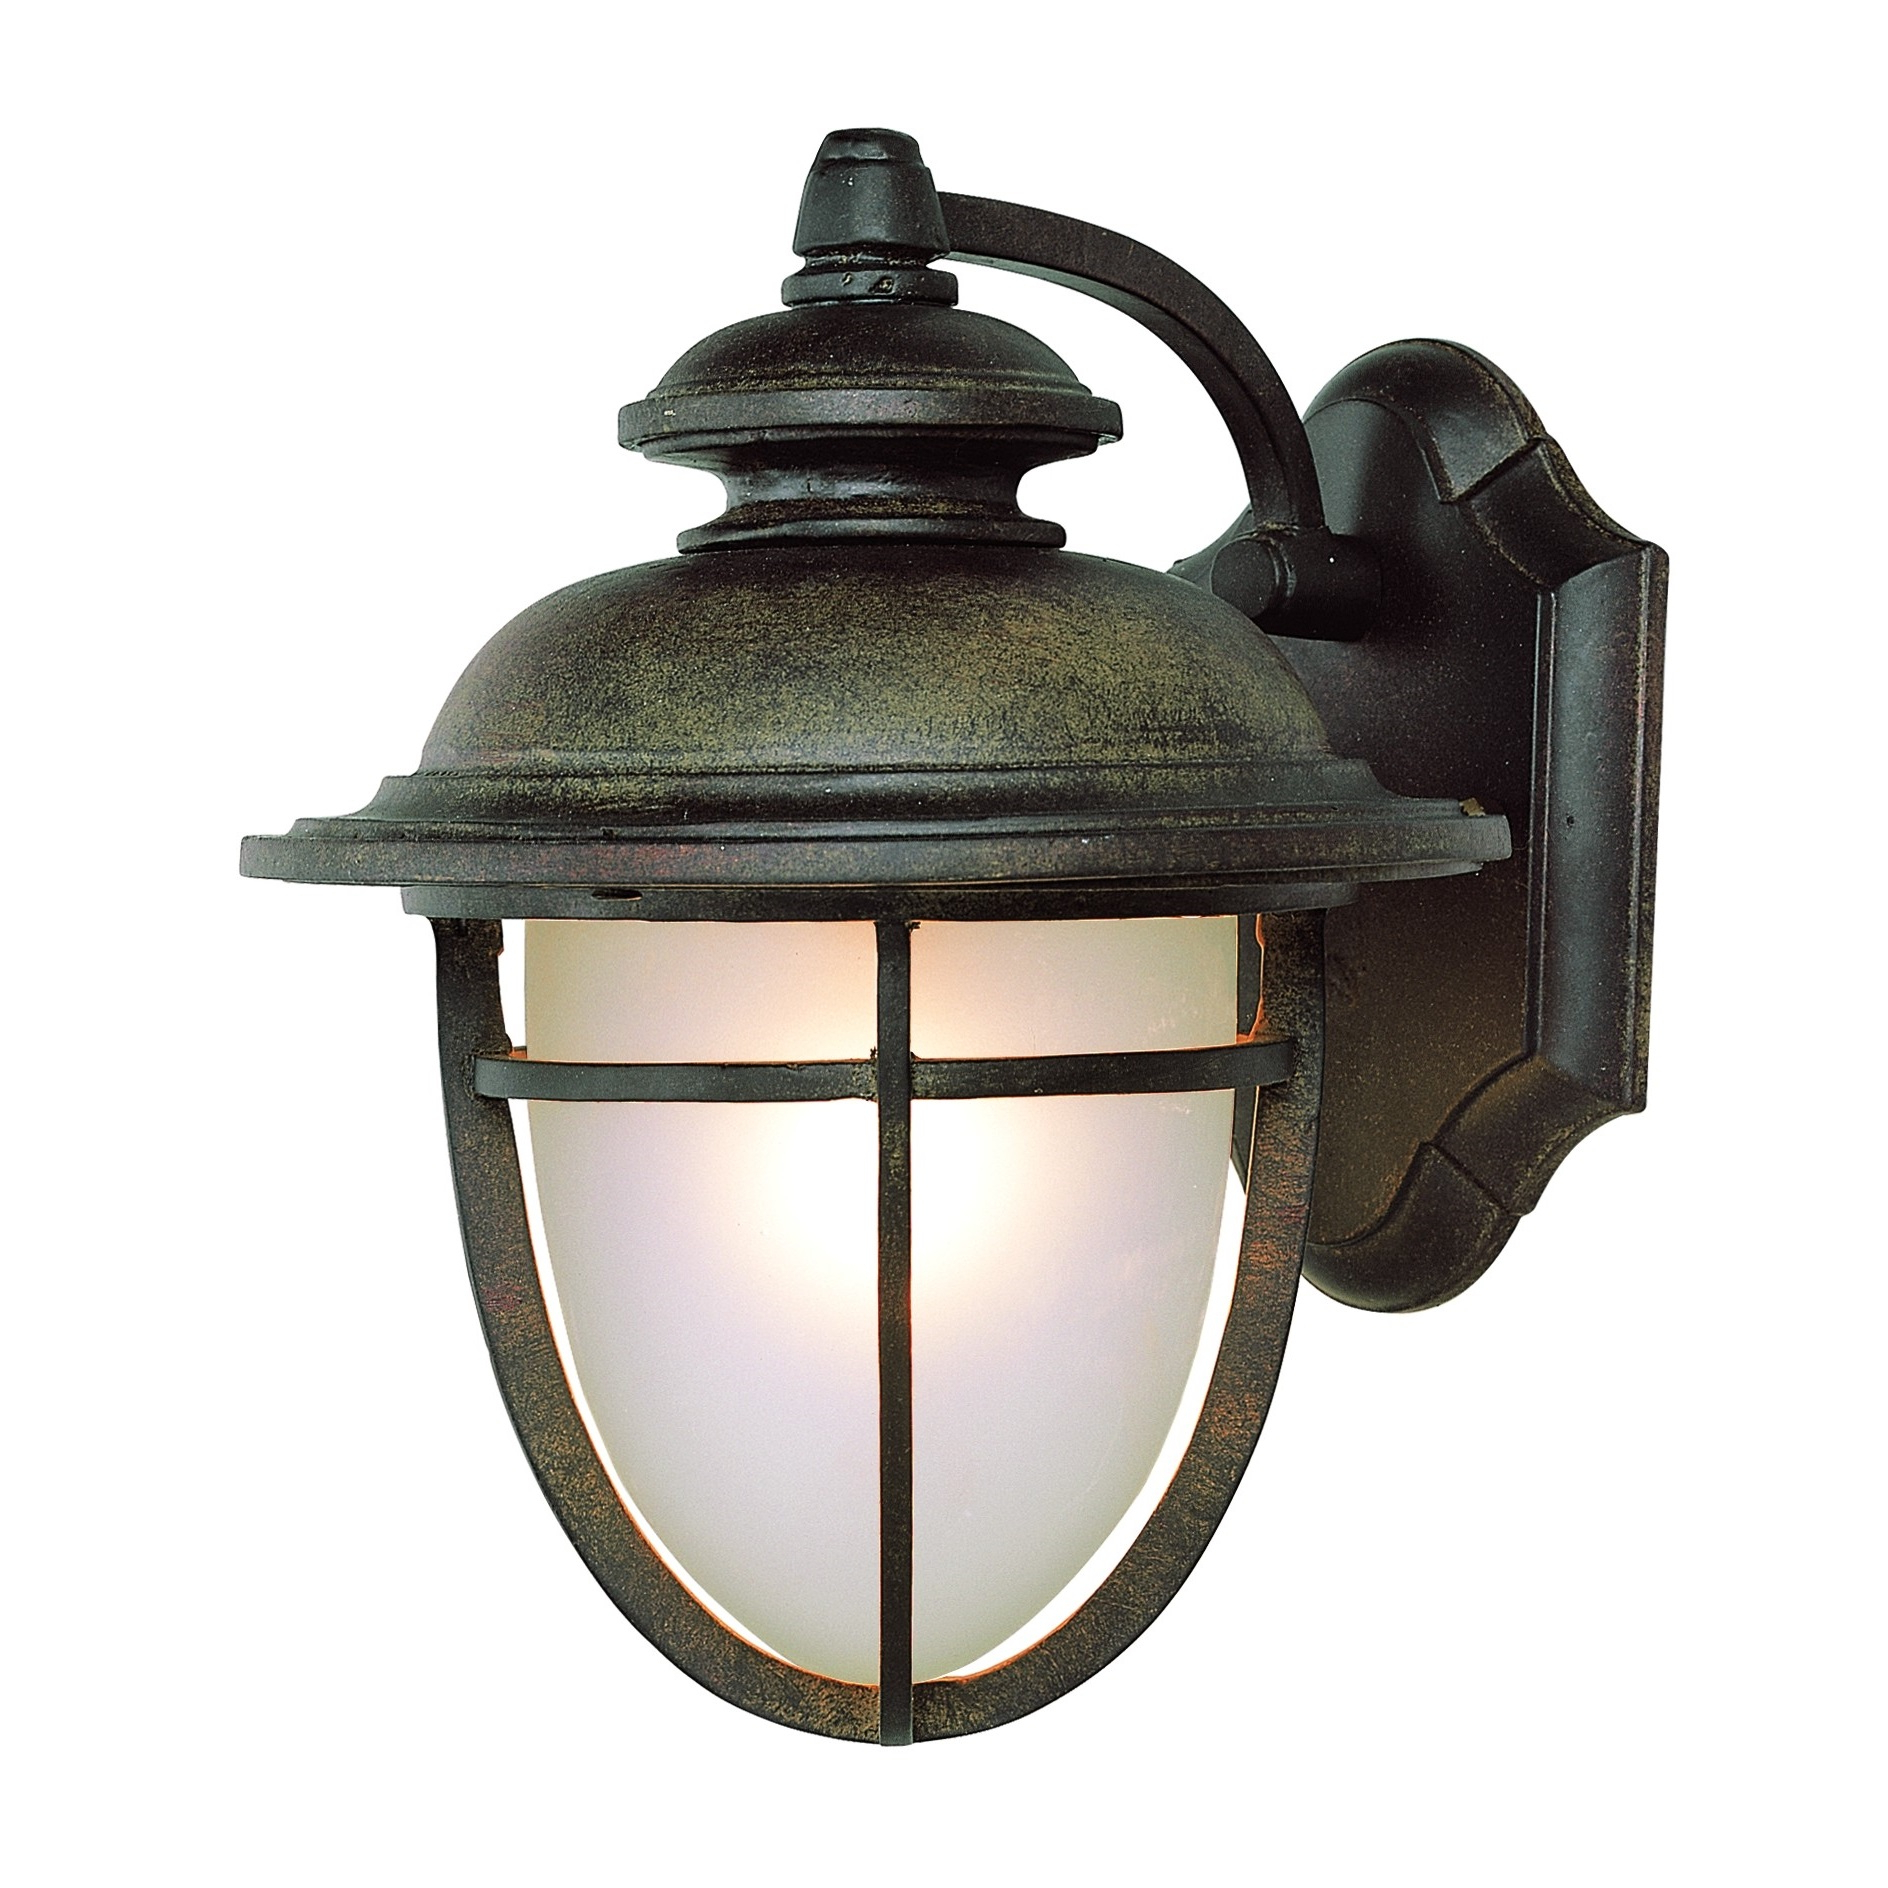 Newest Transglobe Lighting Outdoor 1 Light Wall Lantern In Dark Throughout 1 – Bulb Outdoor Wall Lanterns (View 8 of 15)